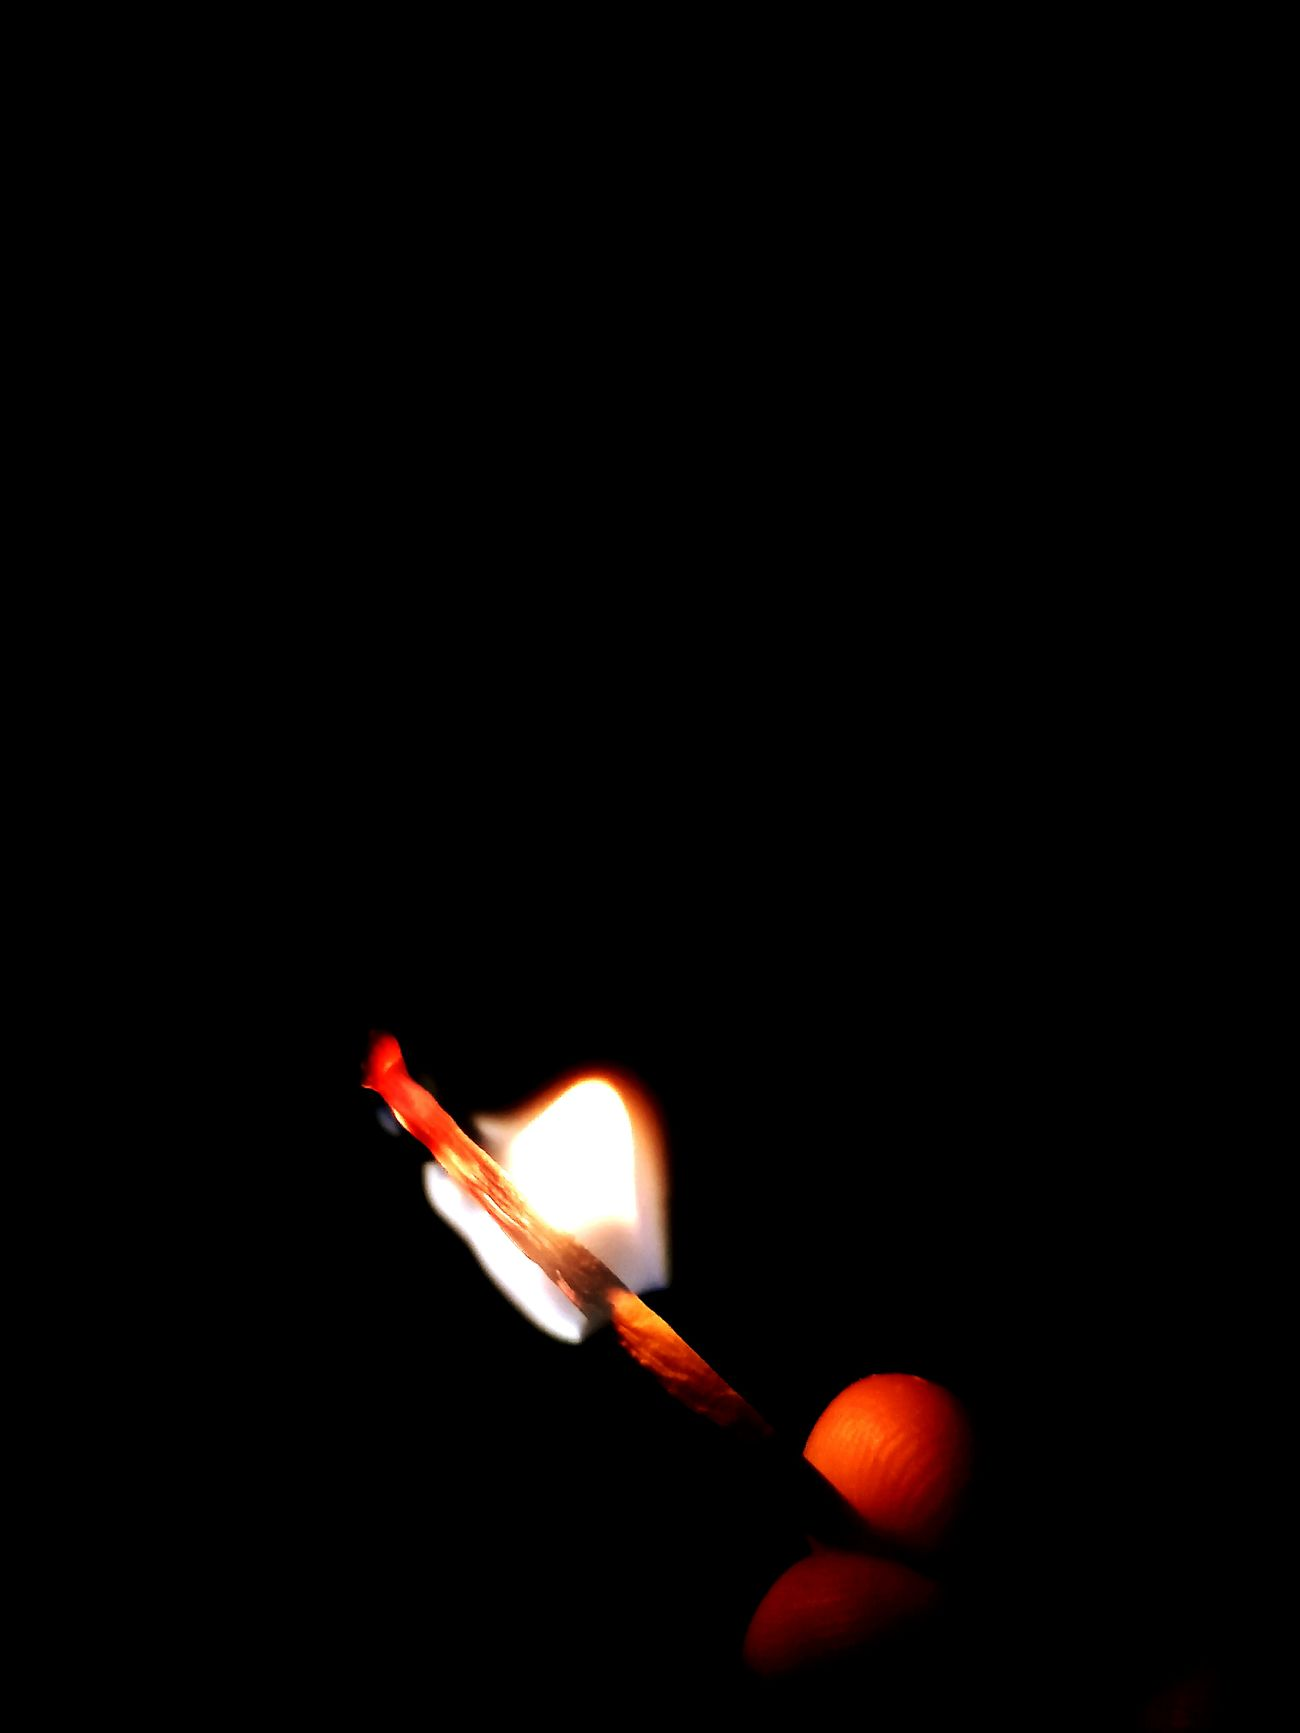 Burning Copy Space Matchstick Igniting Flame Match - Lighting Equipment Heat - Temperature Close-up Smoke - Physical Structure Black Background One Man Only People